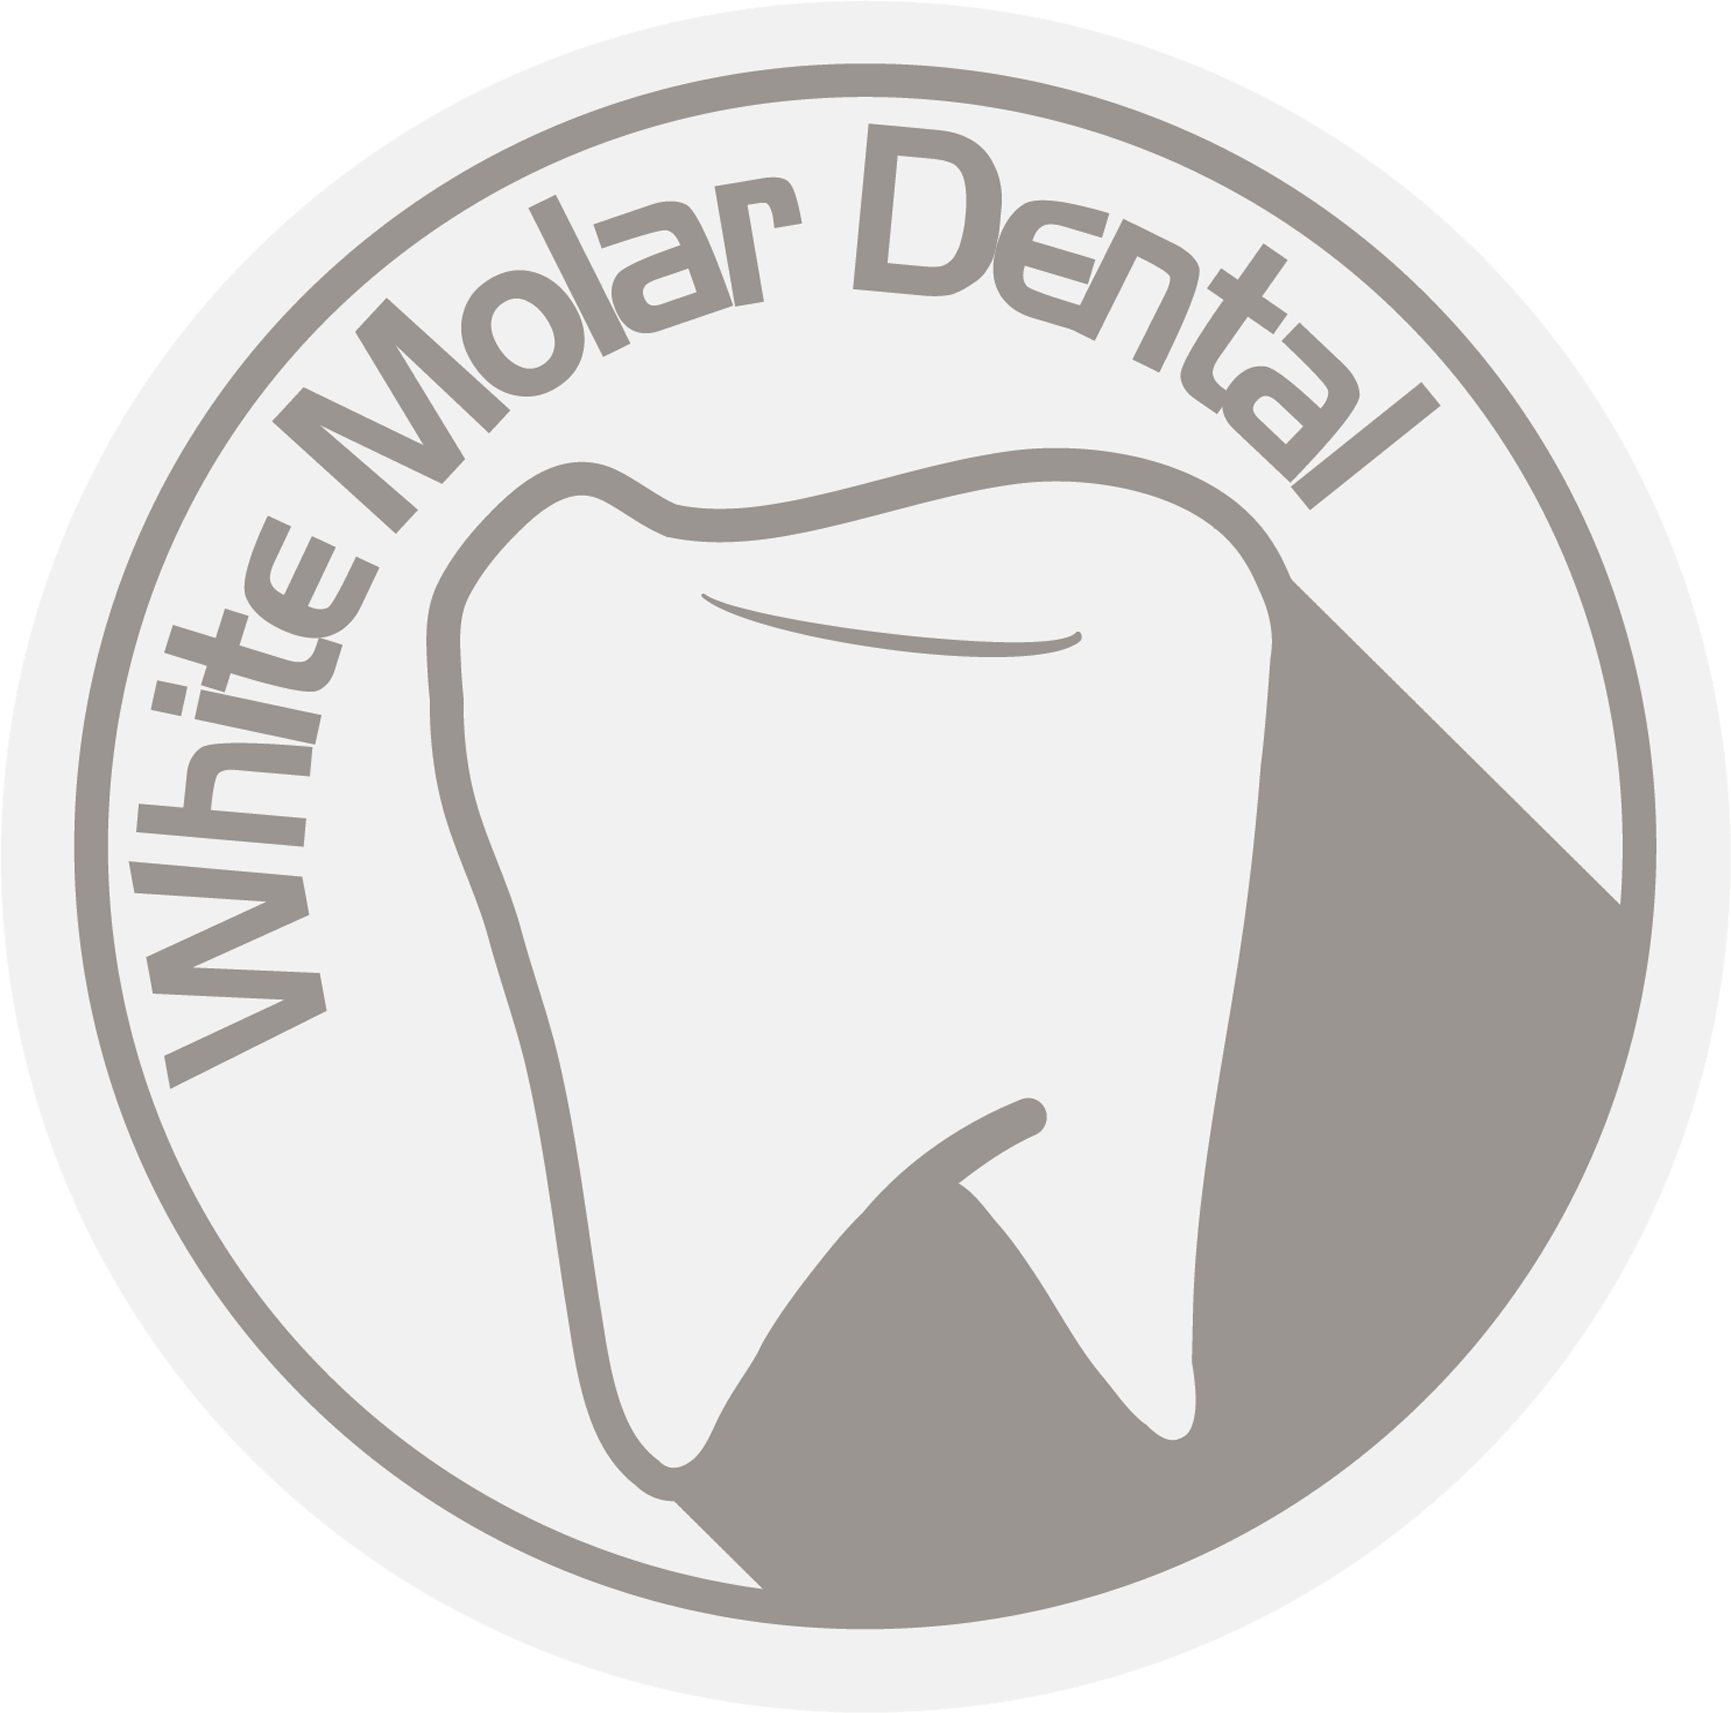 Medical Round White Molar Dental Stamp